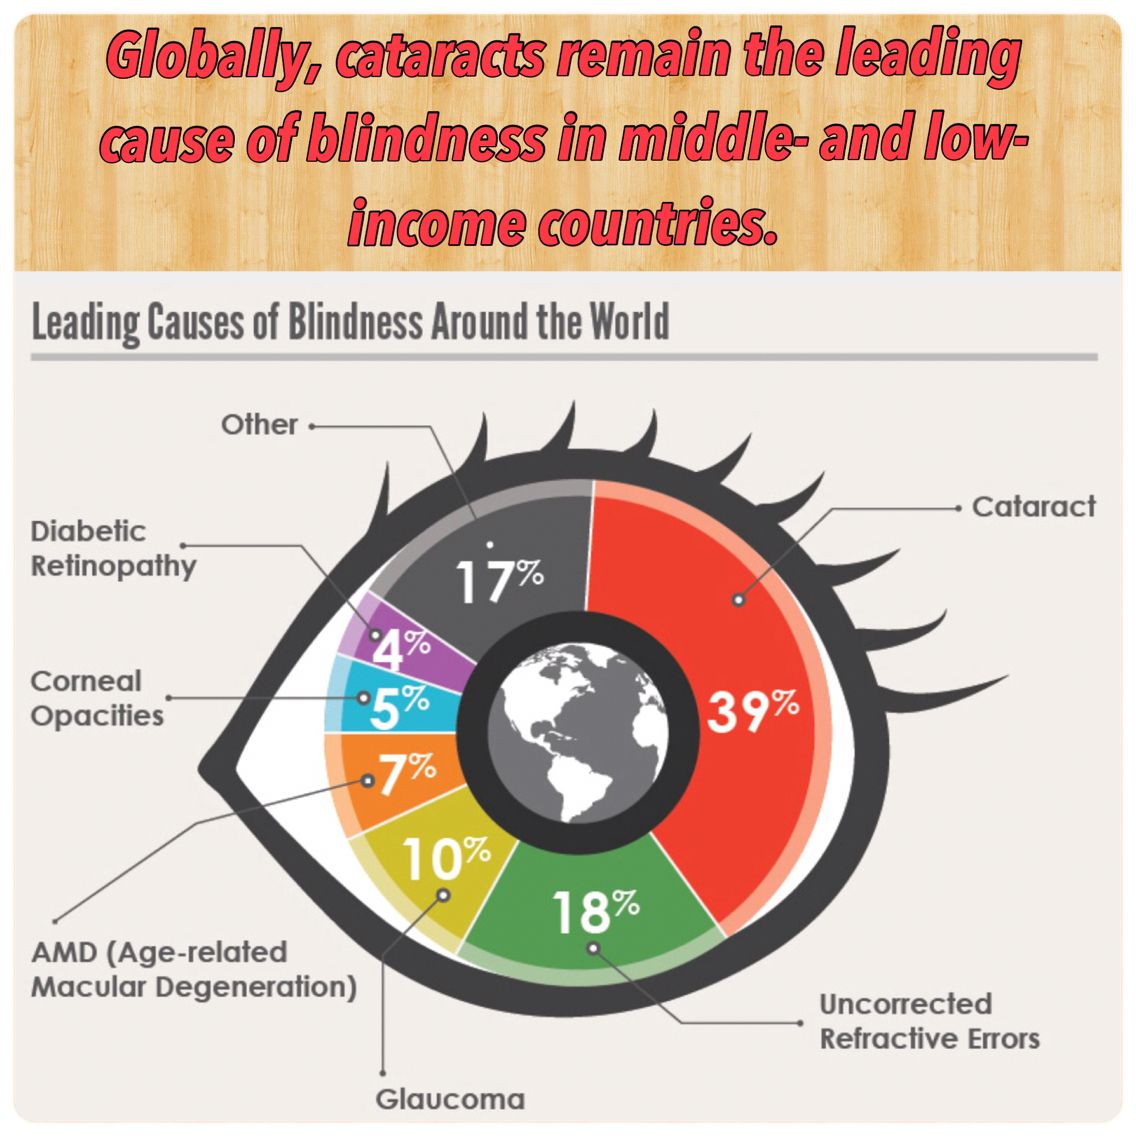 globally cataracts remain the leading cause of blindness in middleand low